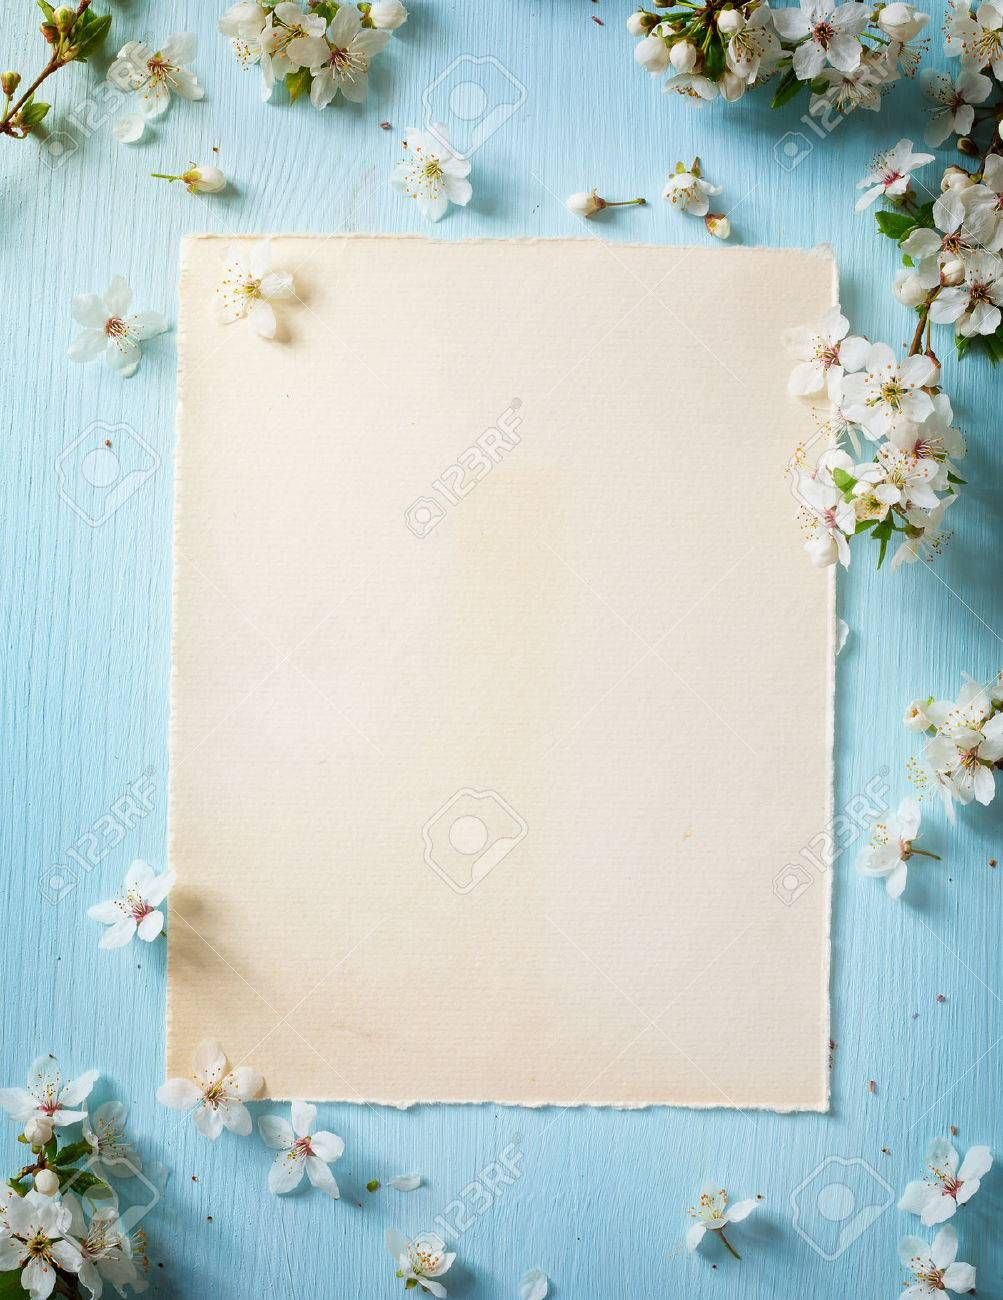 Art Spring border background with spring flowers